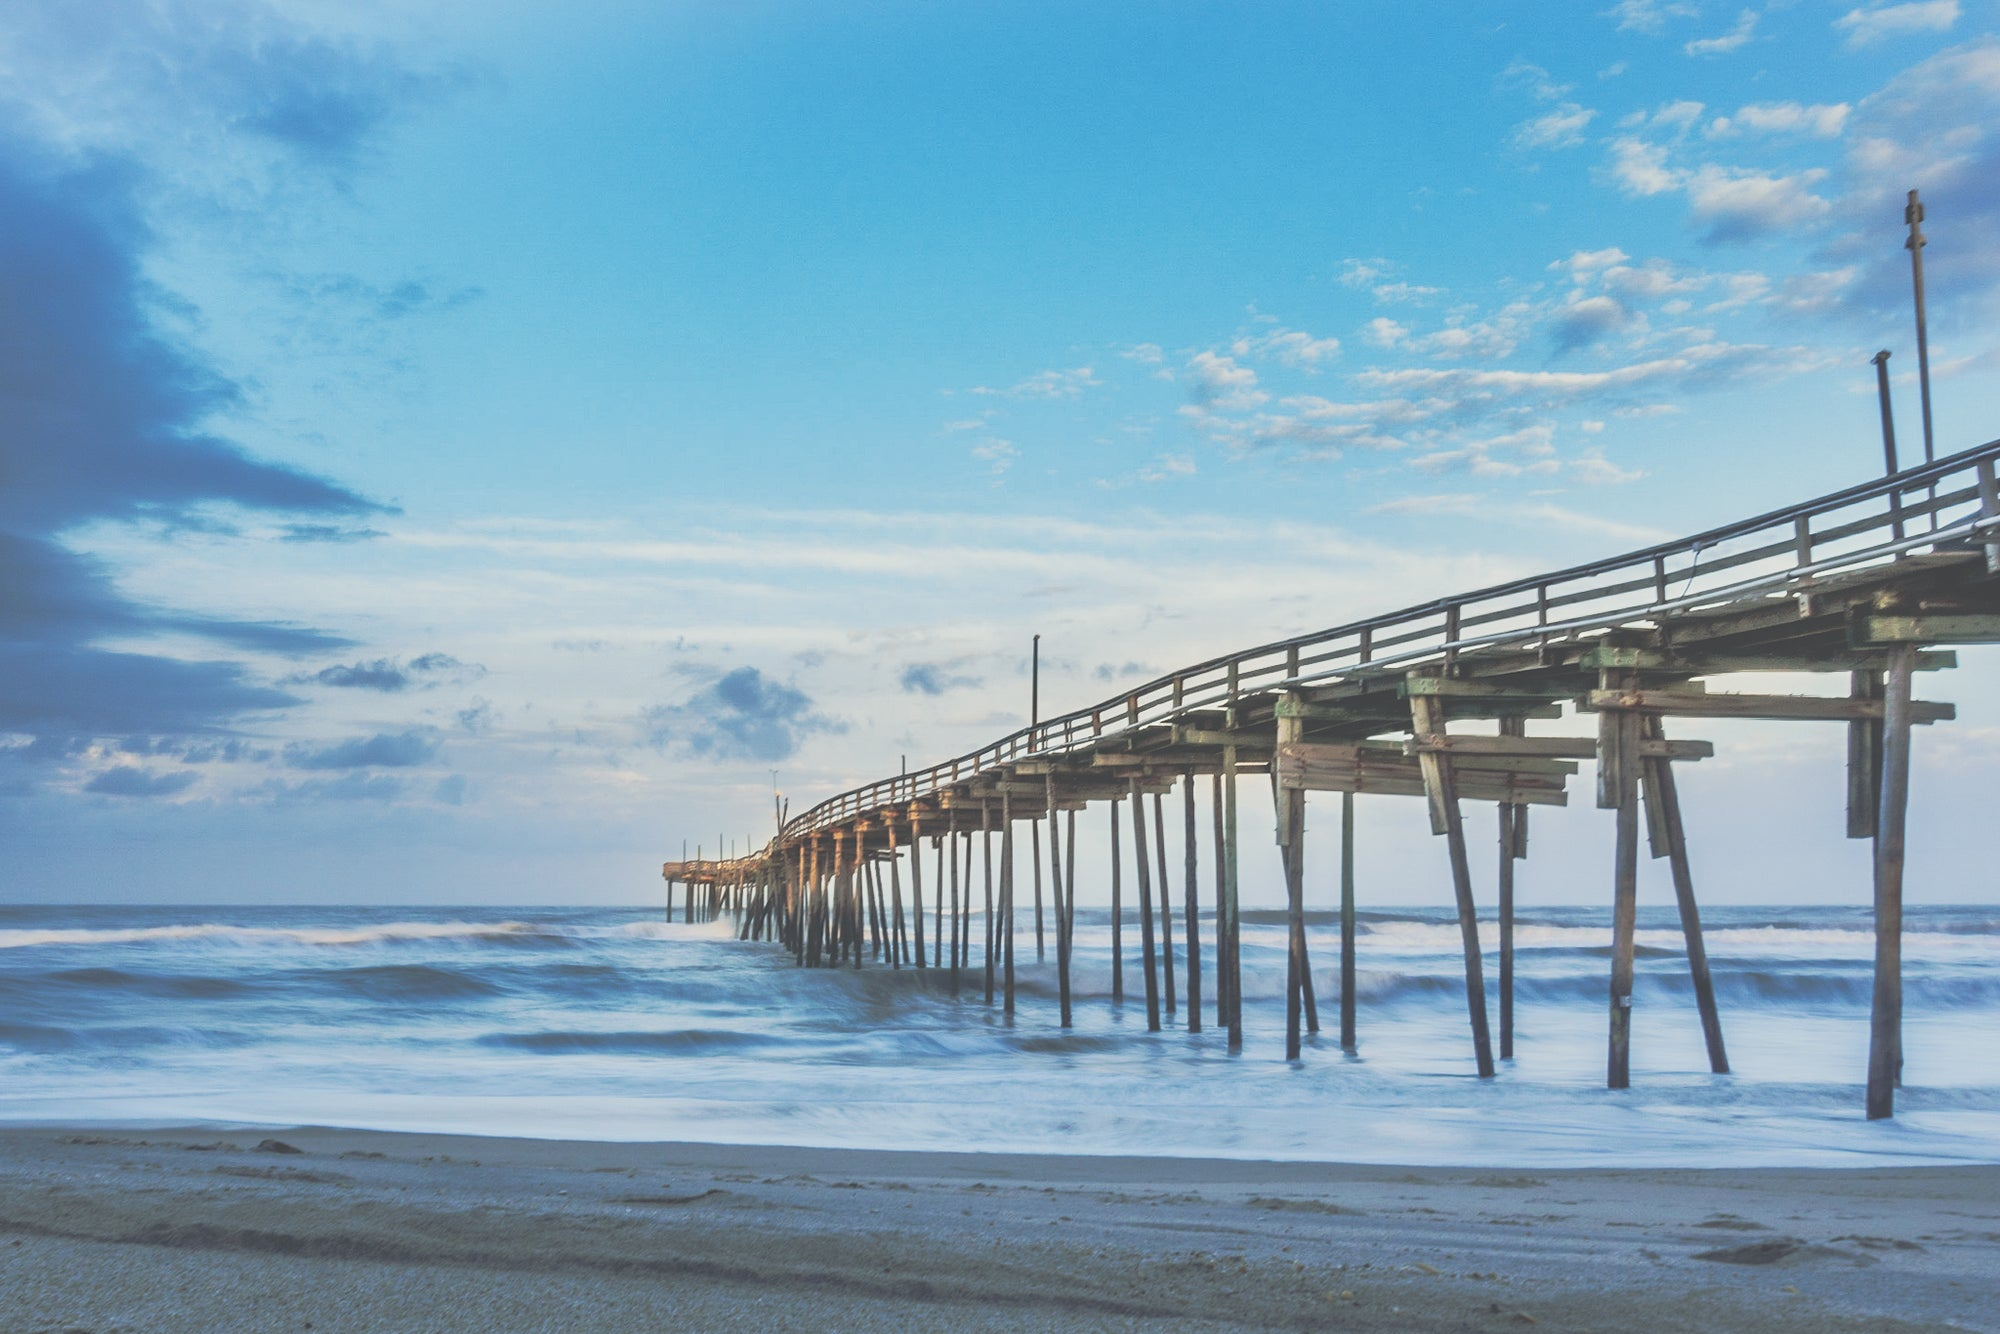 The Avon Fishing Pier during a blue clear sunrise with beautiful clouds and the mystic Atlantic Ocean.